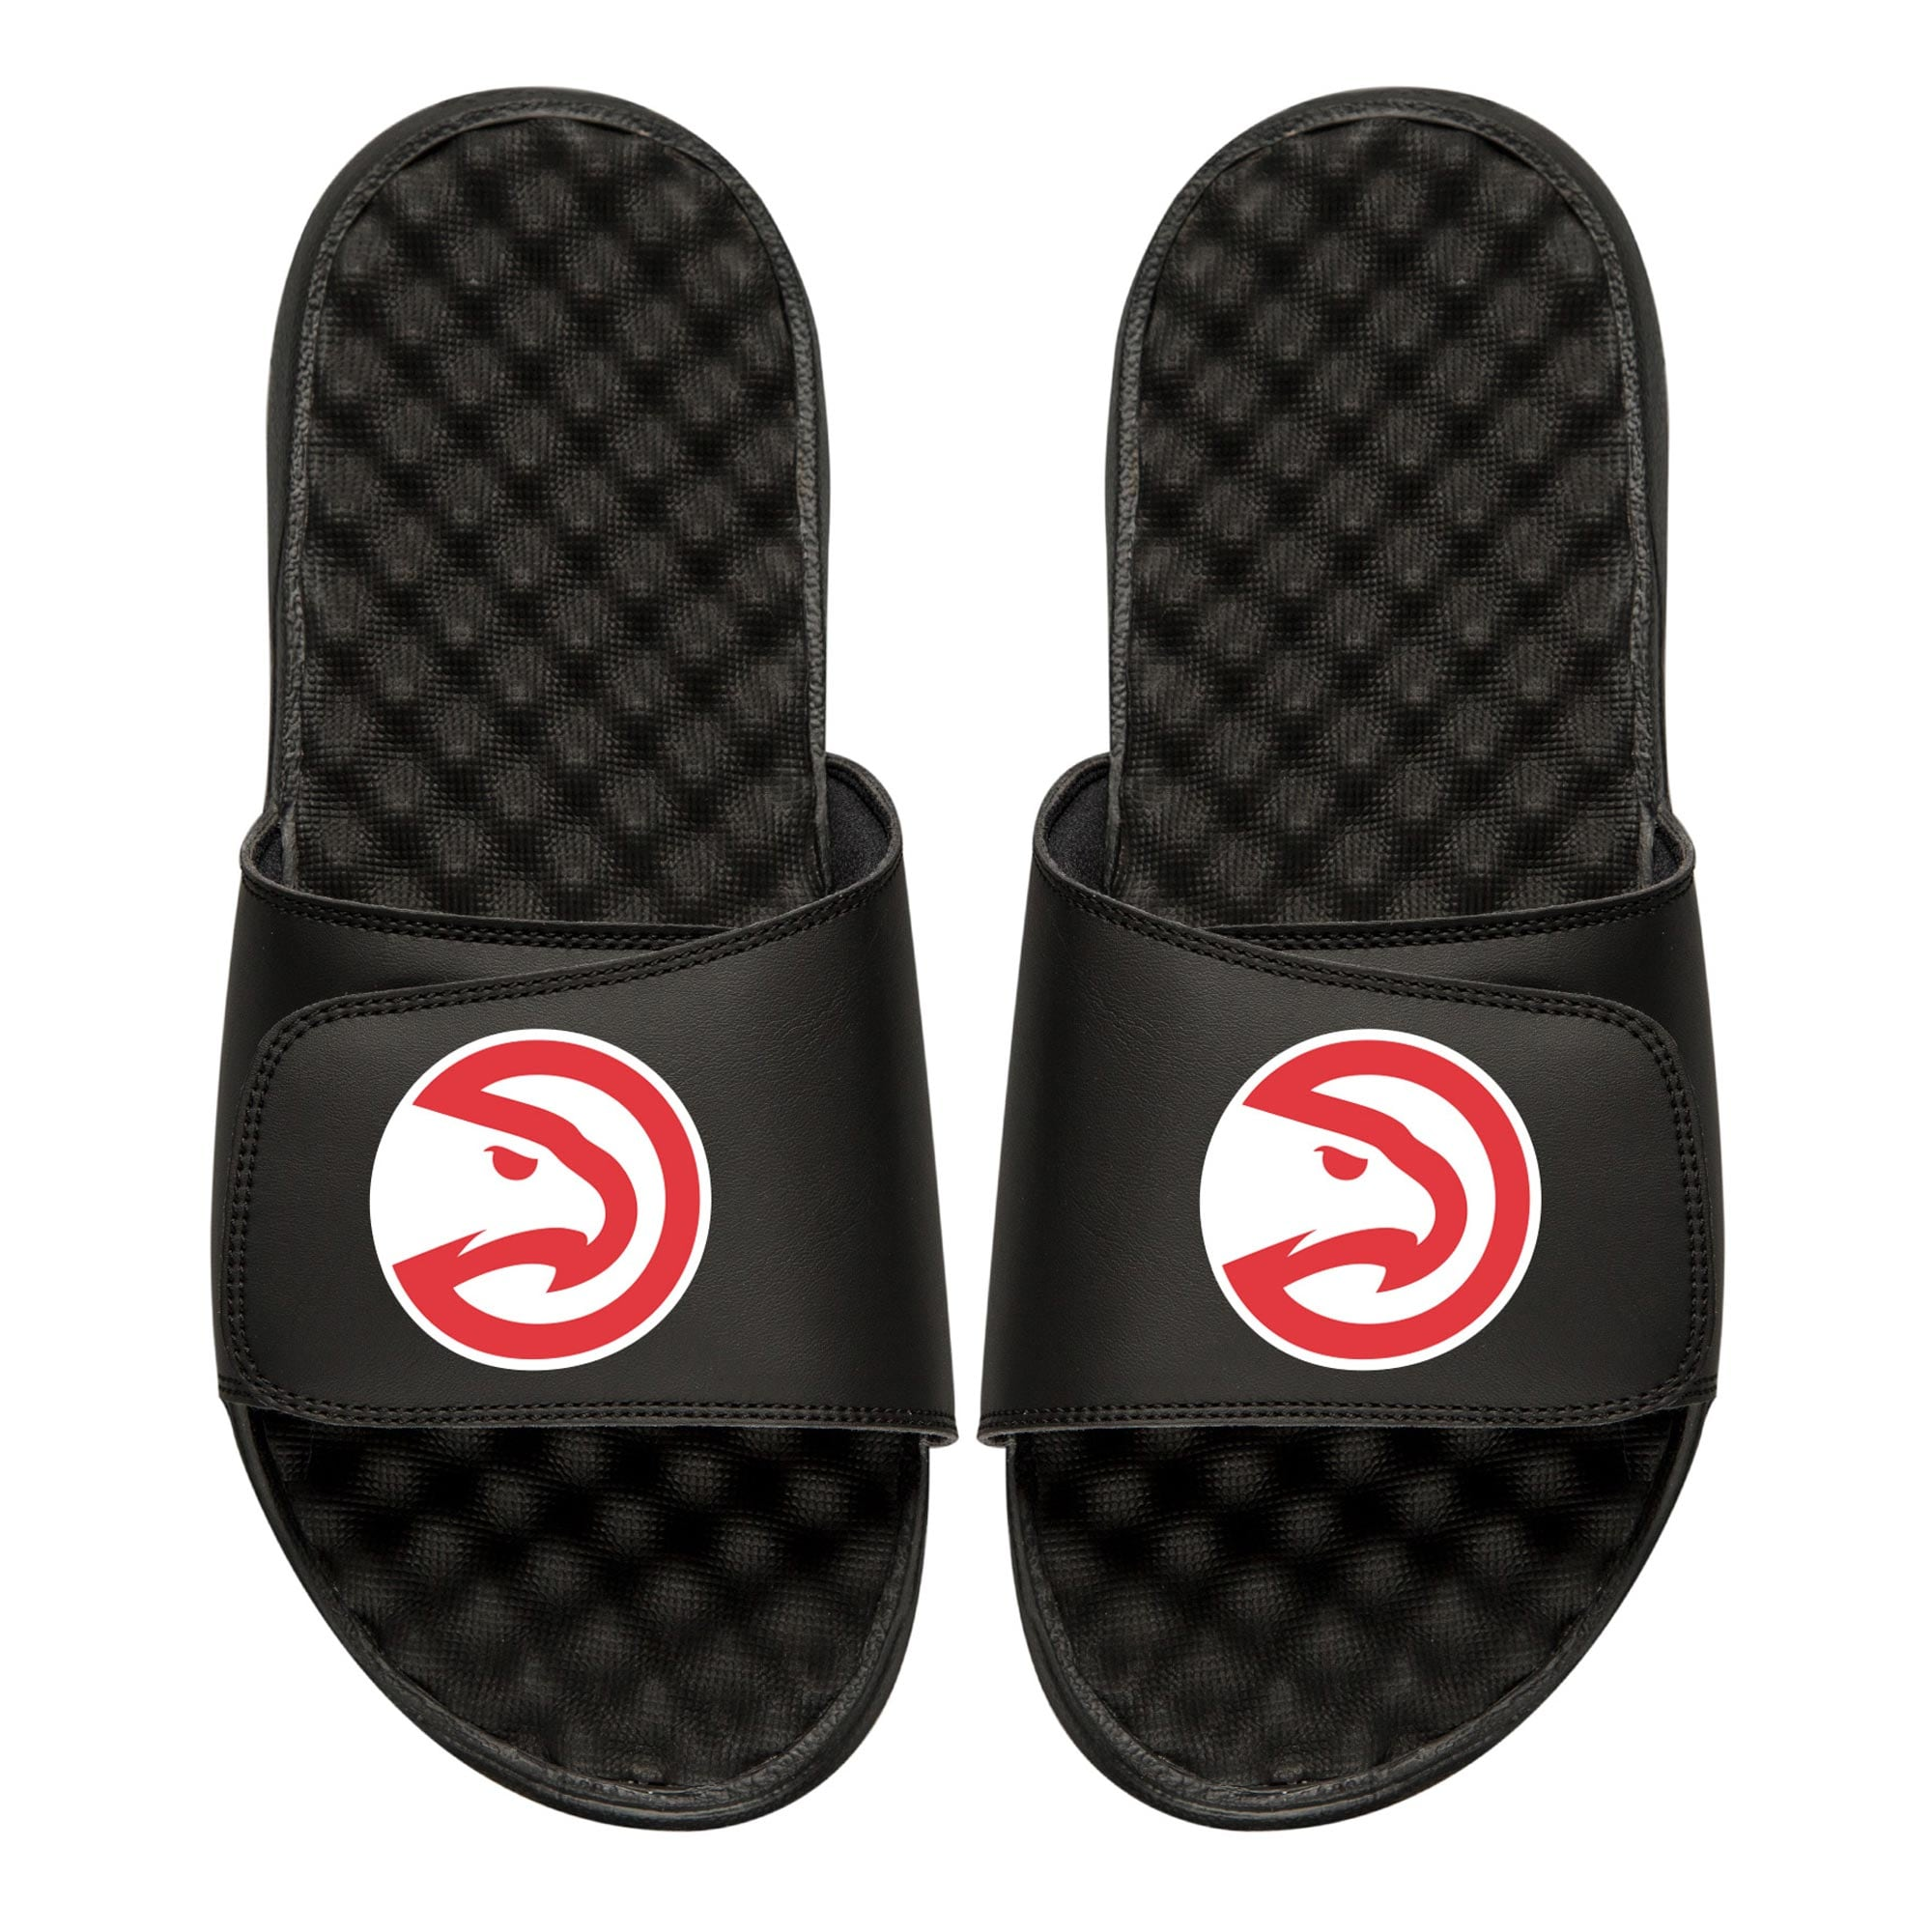 Atlanta Hawks Youth Primary iSlide Sandals - Black